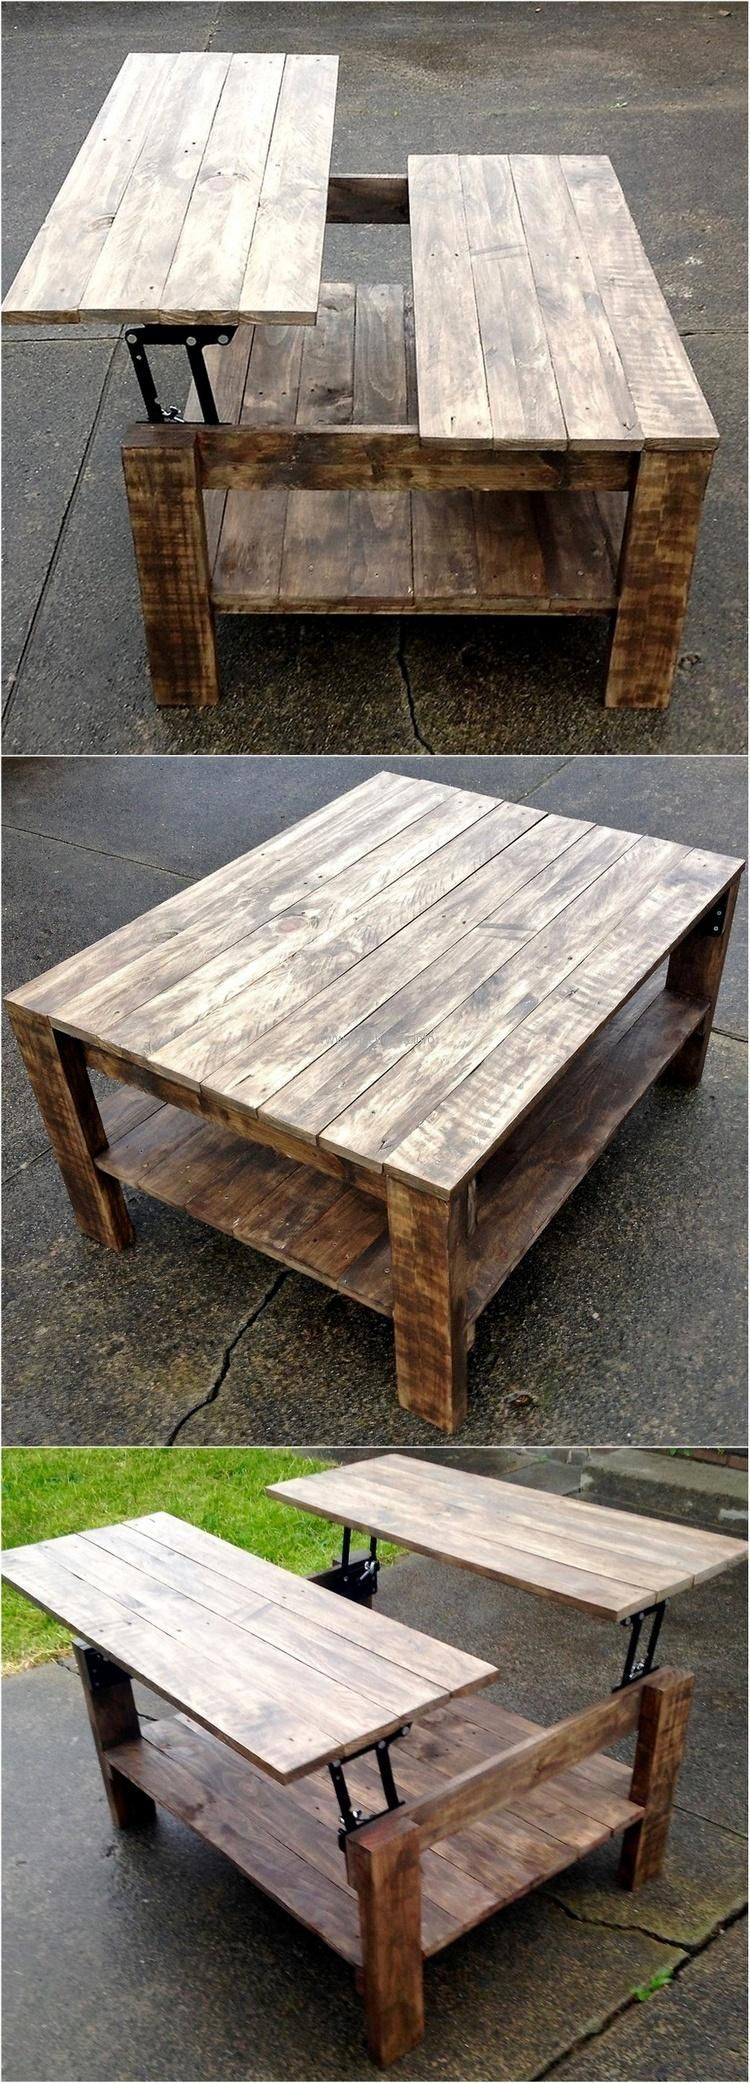 Pallet Double Up Table Furniture Projects Wood Pallet Projects Diy Furniture [ 2083 x 750 Pixel ]